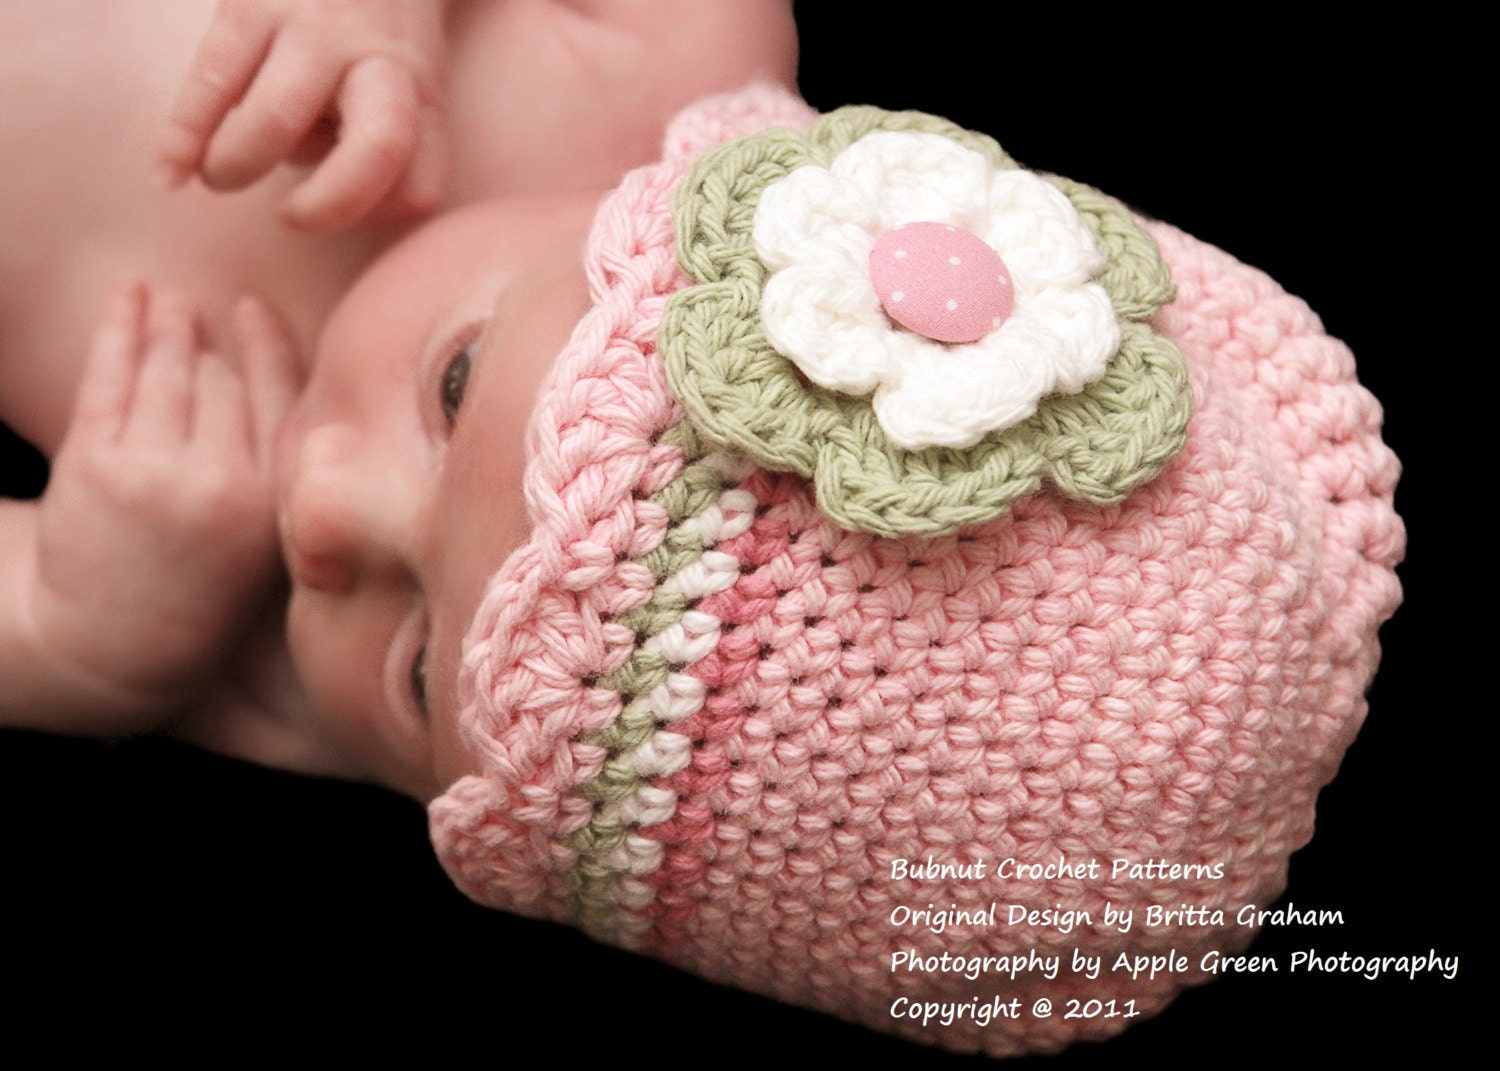 Crochet Beanie Hat Pattern For Babies : Baby Hat Crochet Pattern with Shell Trim Crochet Hat Pattern